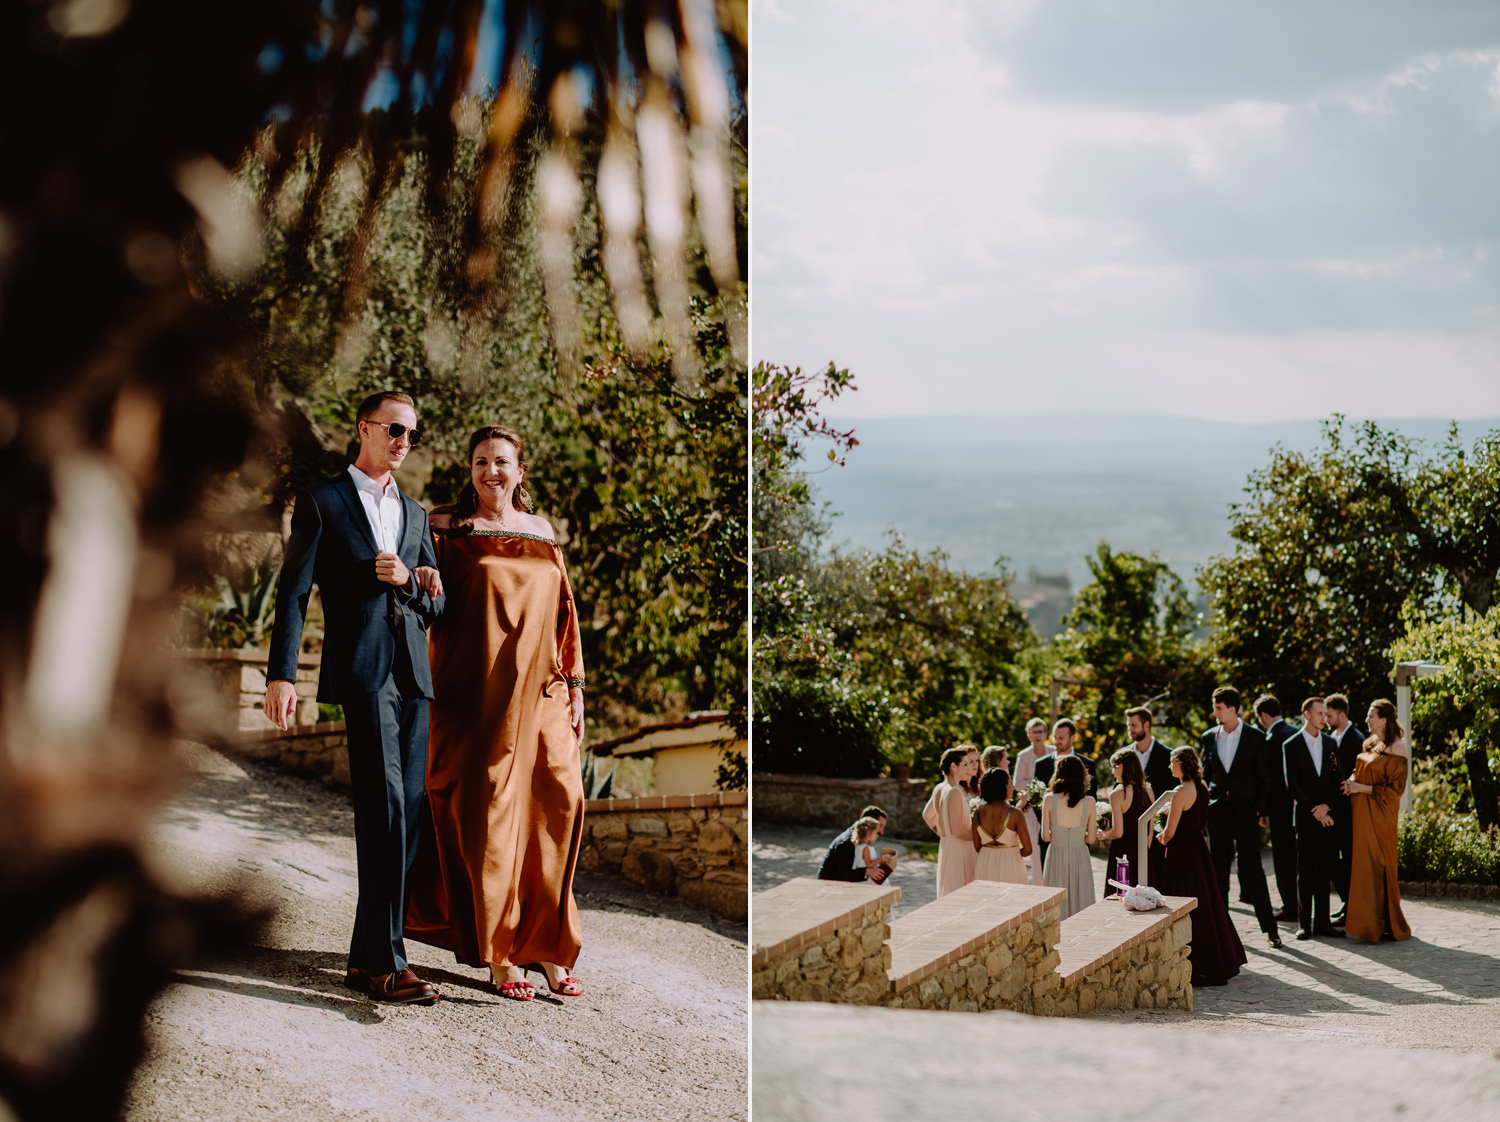 Unbria wedding photographer outdoor wedding ceremony